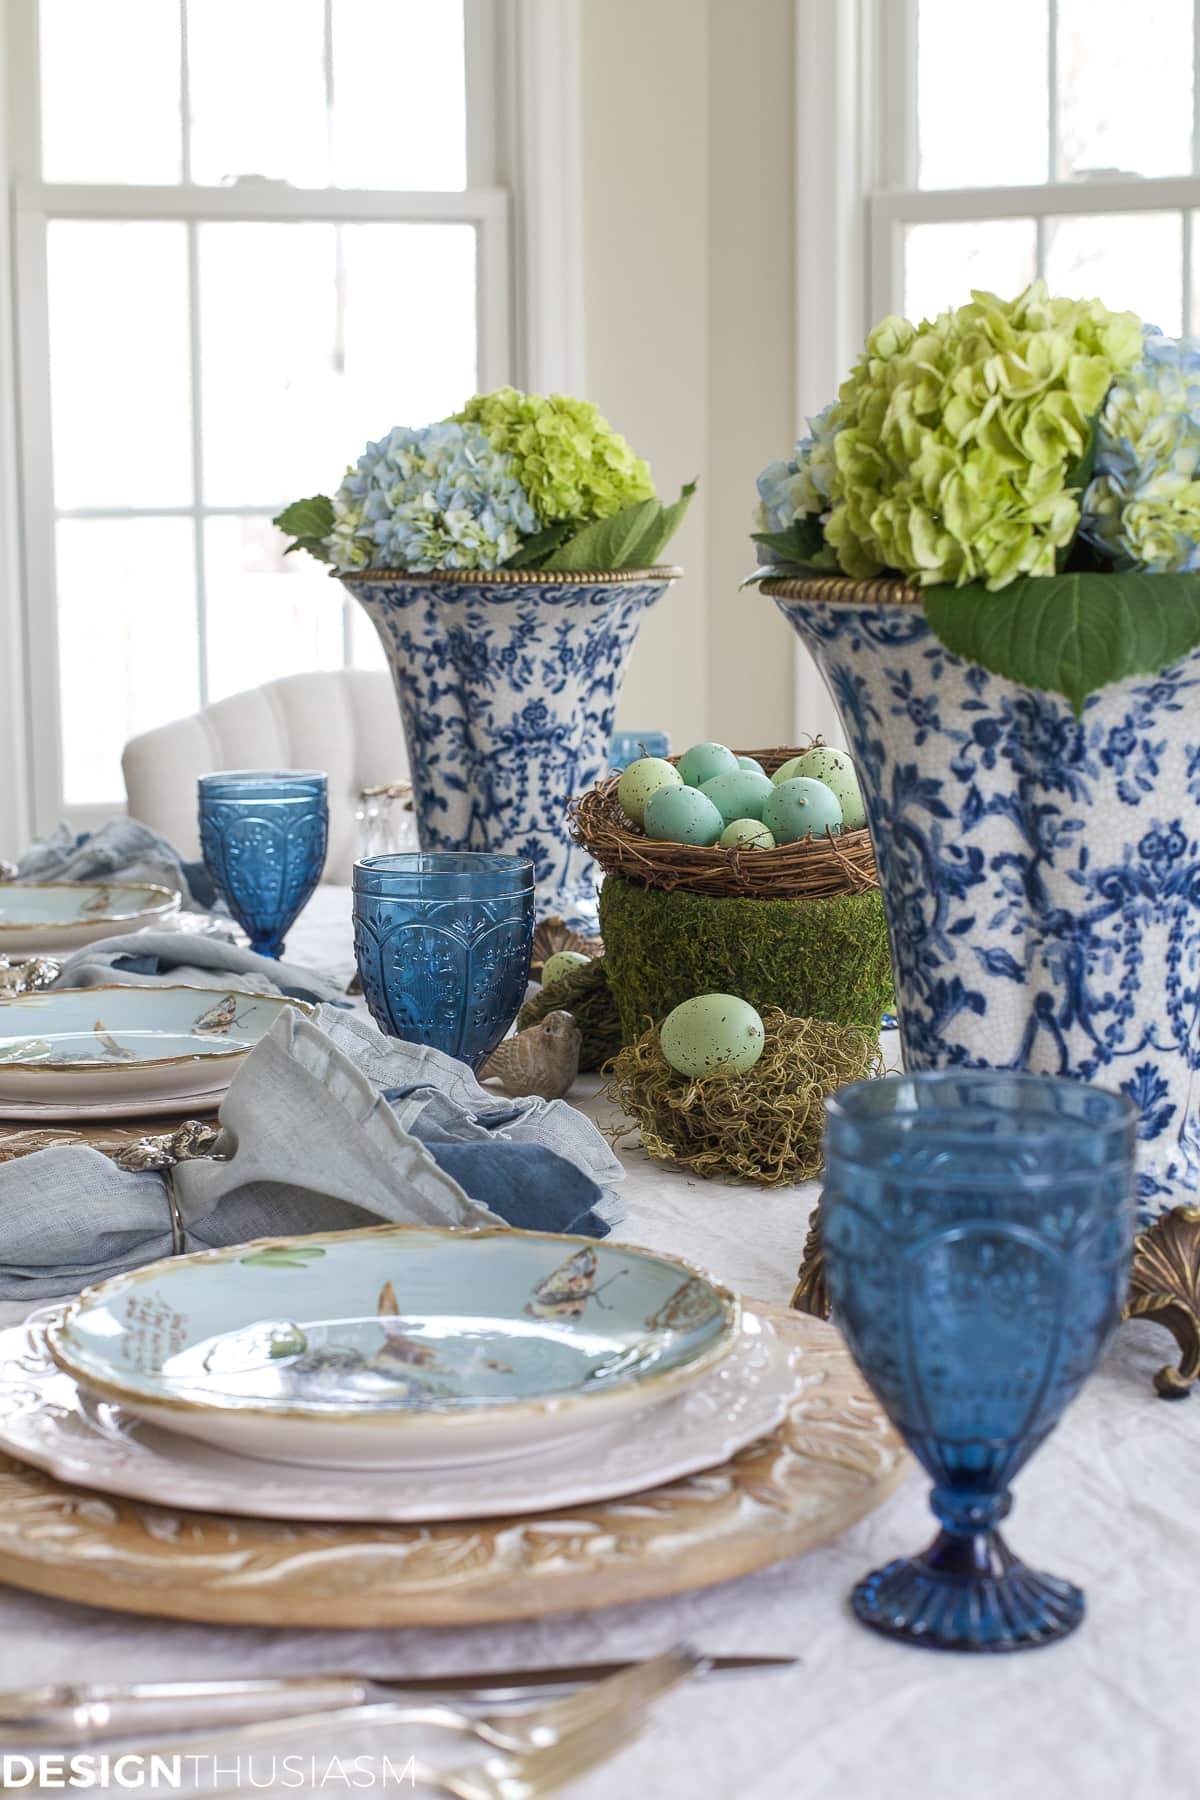 Elegant Easter table decorations for a holiday brunch | designthusiasm.com